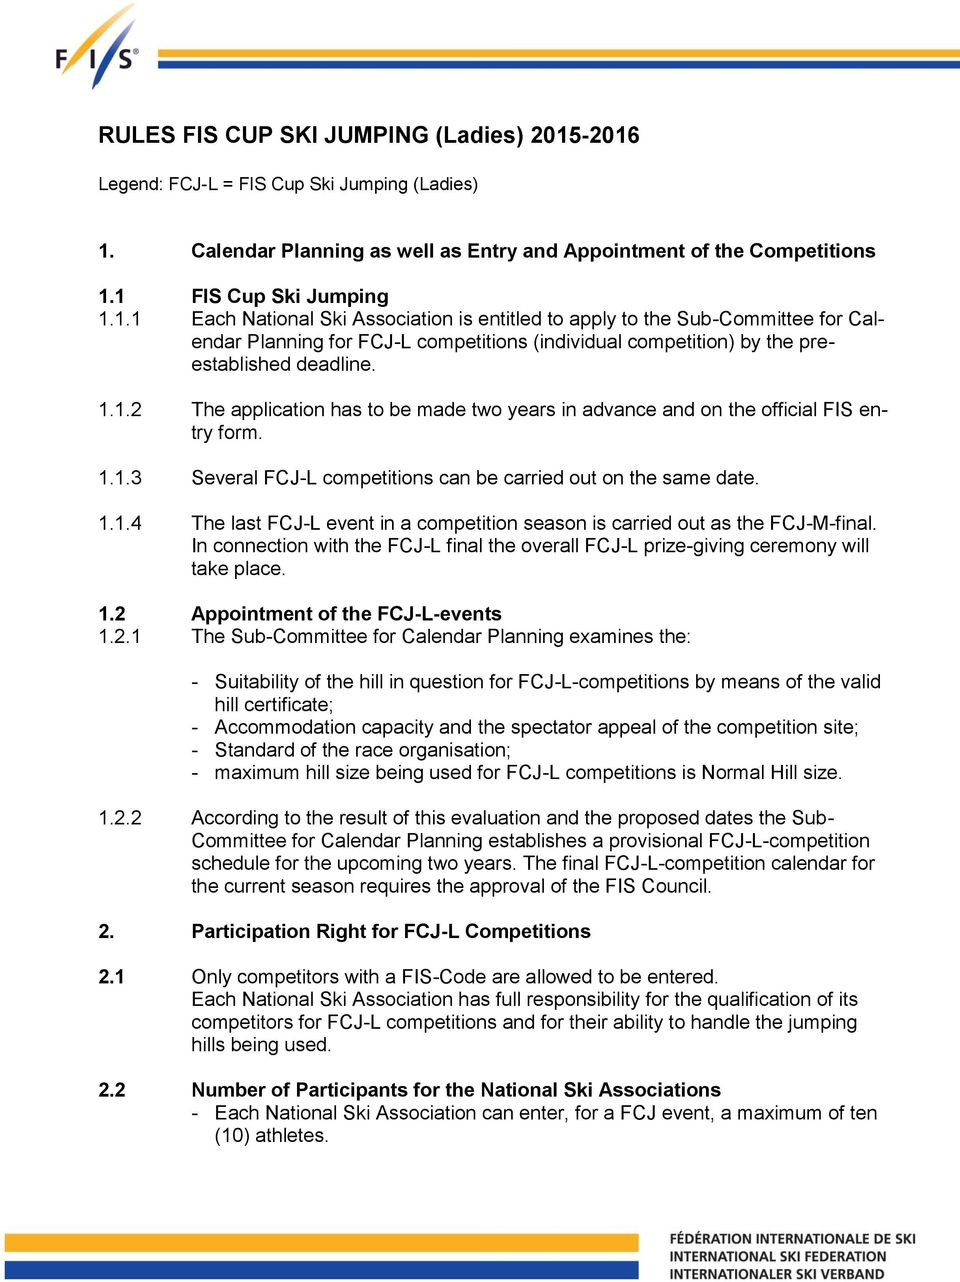 1.1.2 The application has to be made two years in advance and on the official FIS entry form. 1.1.3 Several FCJ-L competitions can be carried out on the same date. 1.1.4 The last FCJ-L event in a competition season is carried out as the FCJ-M-final.